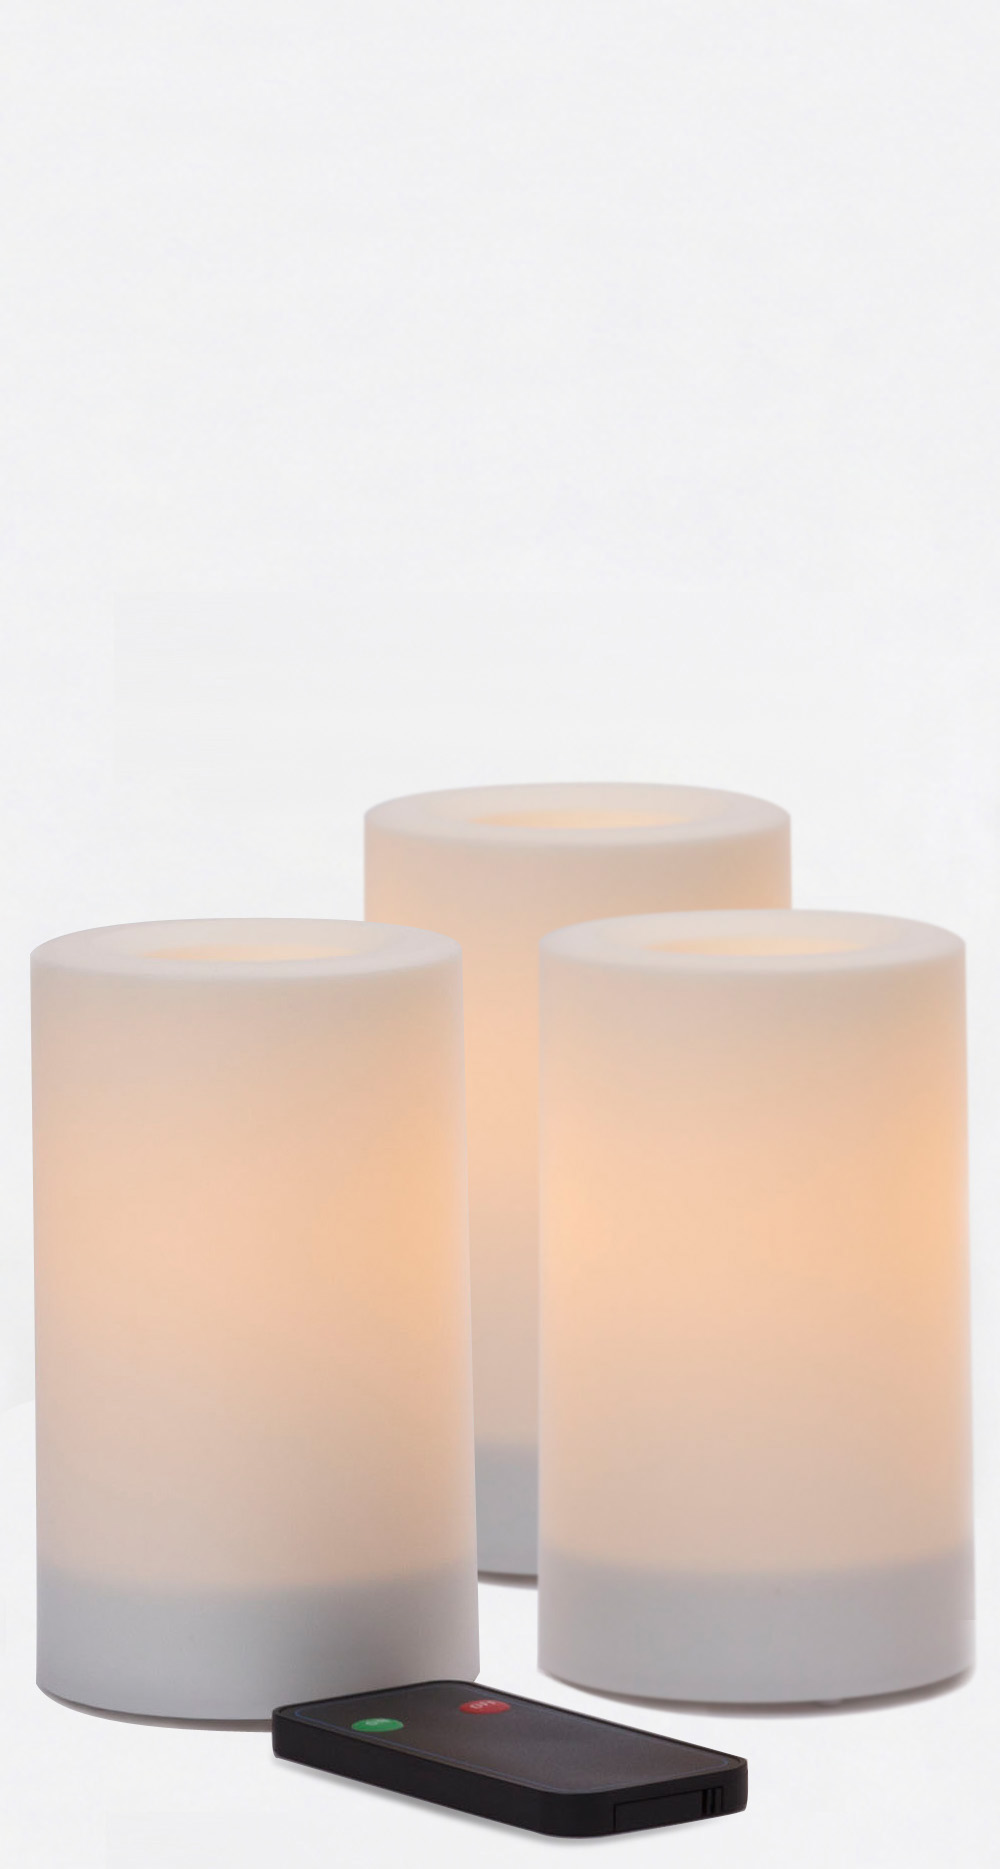 5 Inch Flameless Remote Control Outdoor Pillar Candles - White - 3 Pack